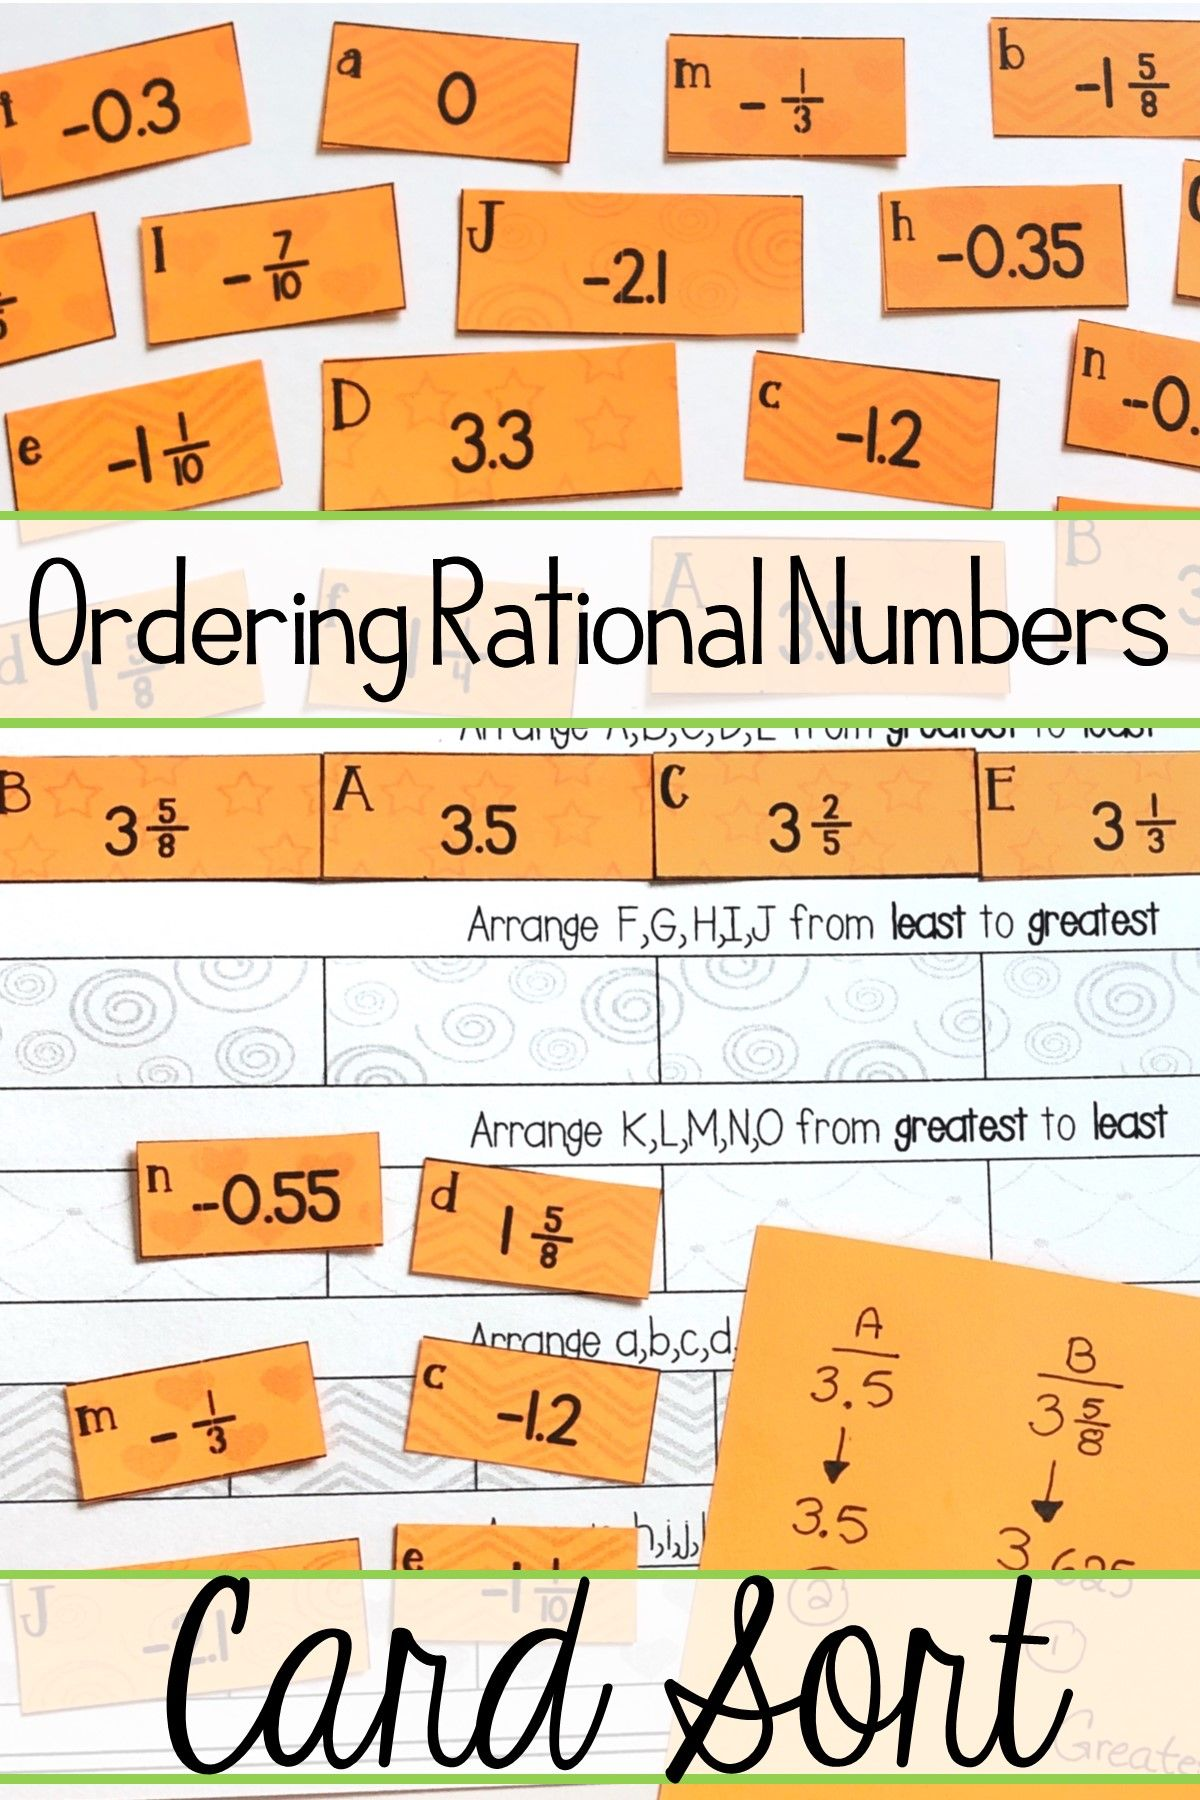 Fresh Ideas - Ordering Rational Numbers Activity (Positive and Negative